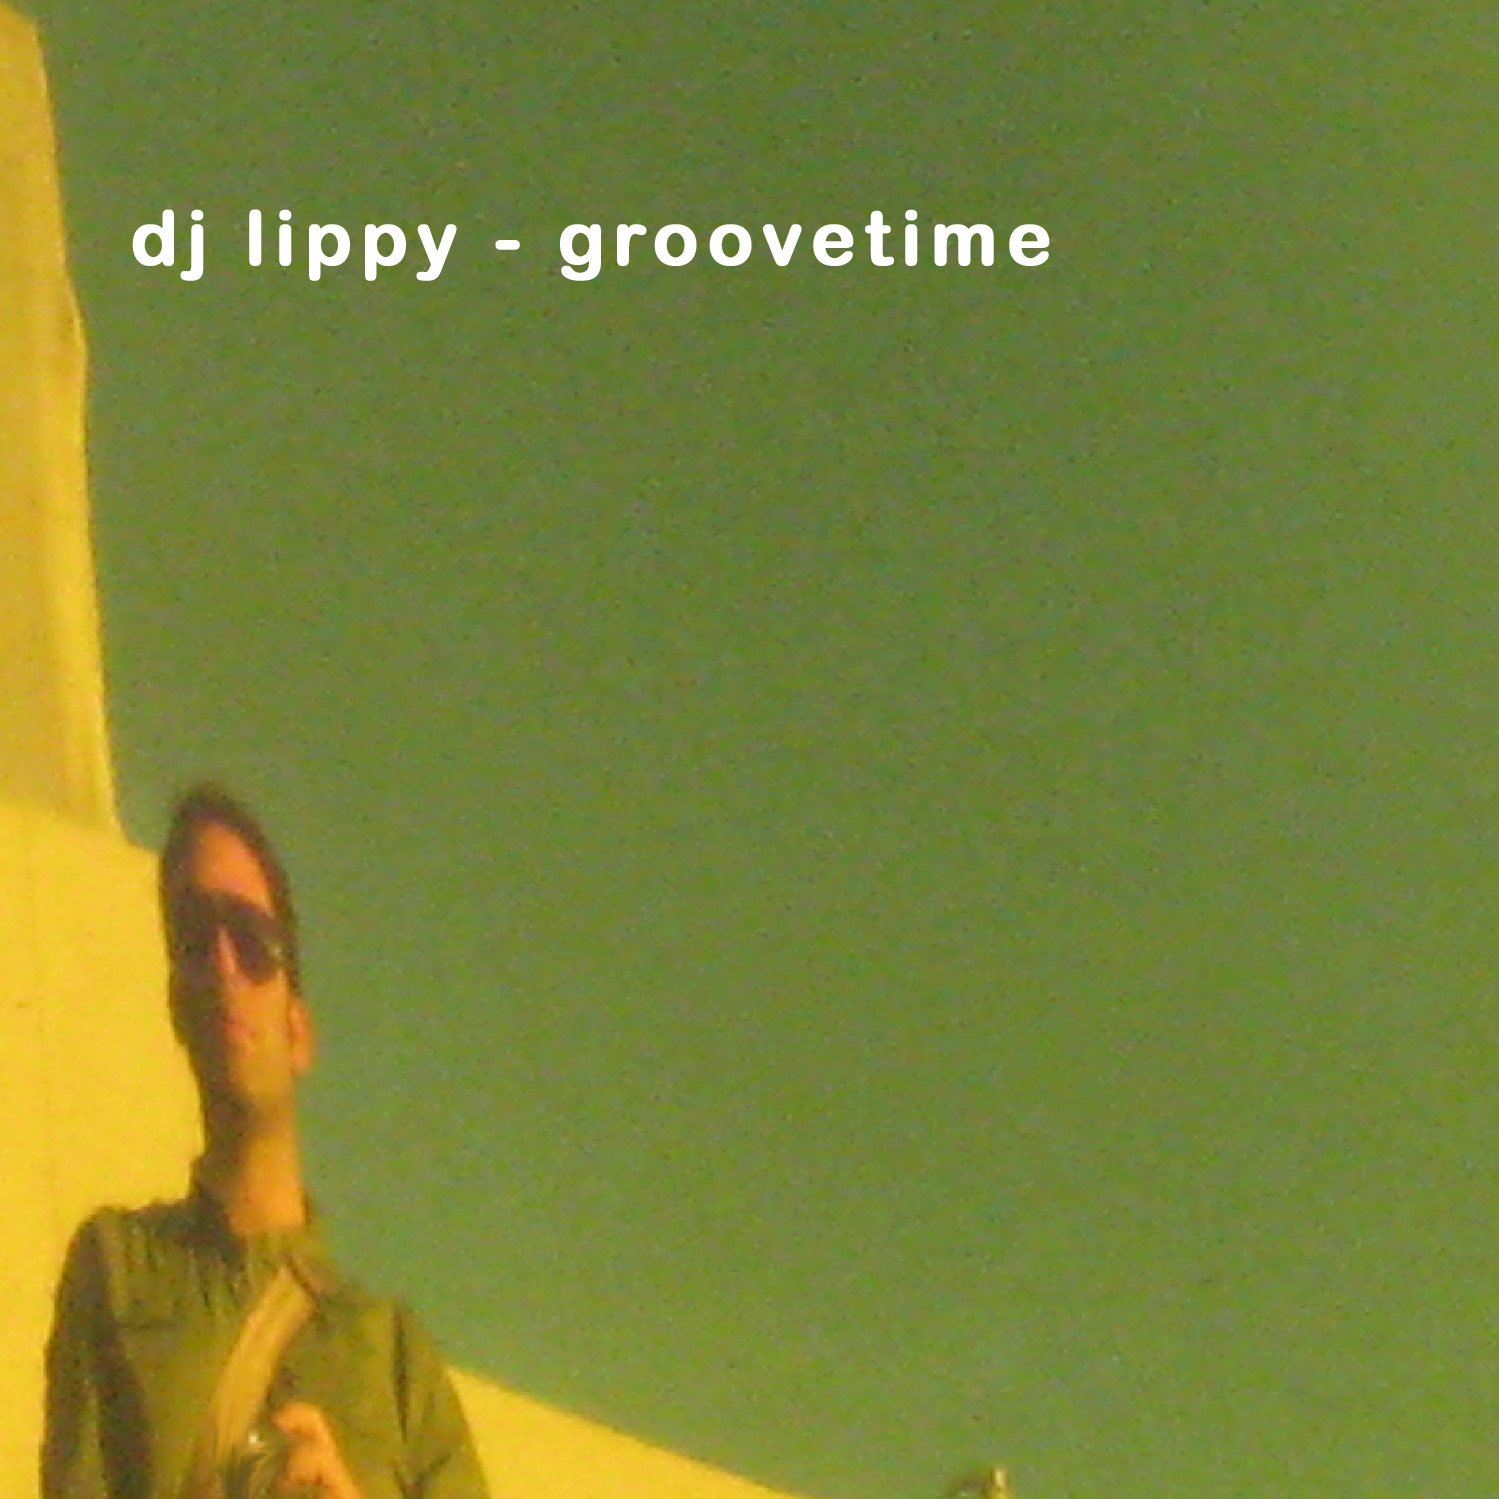 Well here's a little ditty just for you ! I've put together this (almost) hour long mix called groovetime. It's a collection of some of my favorite songs ...